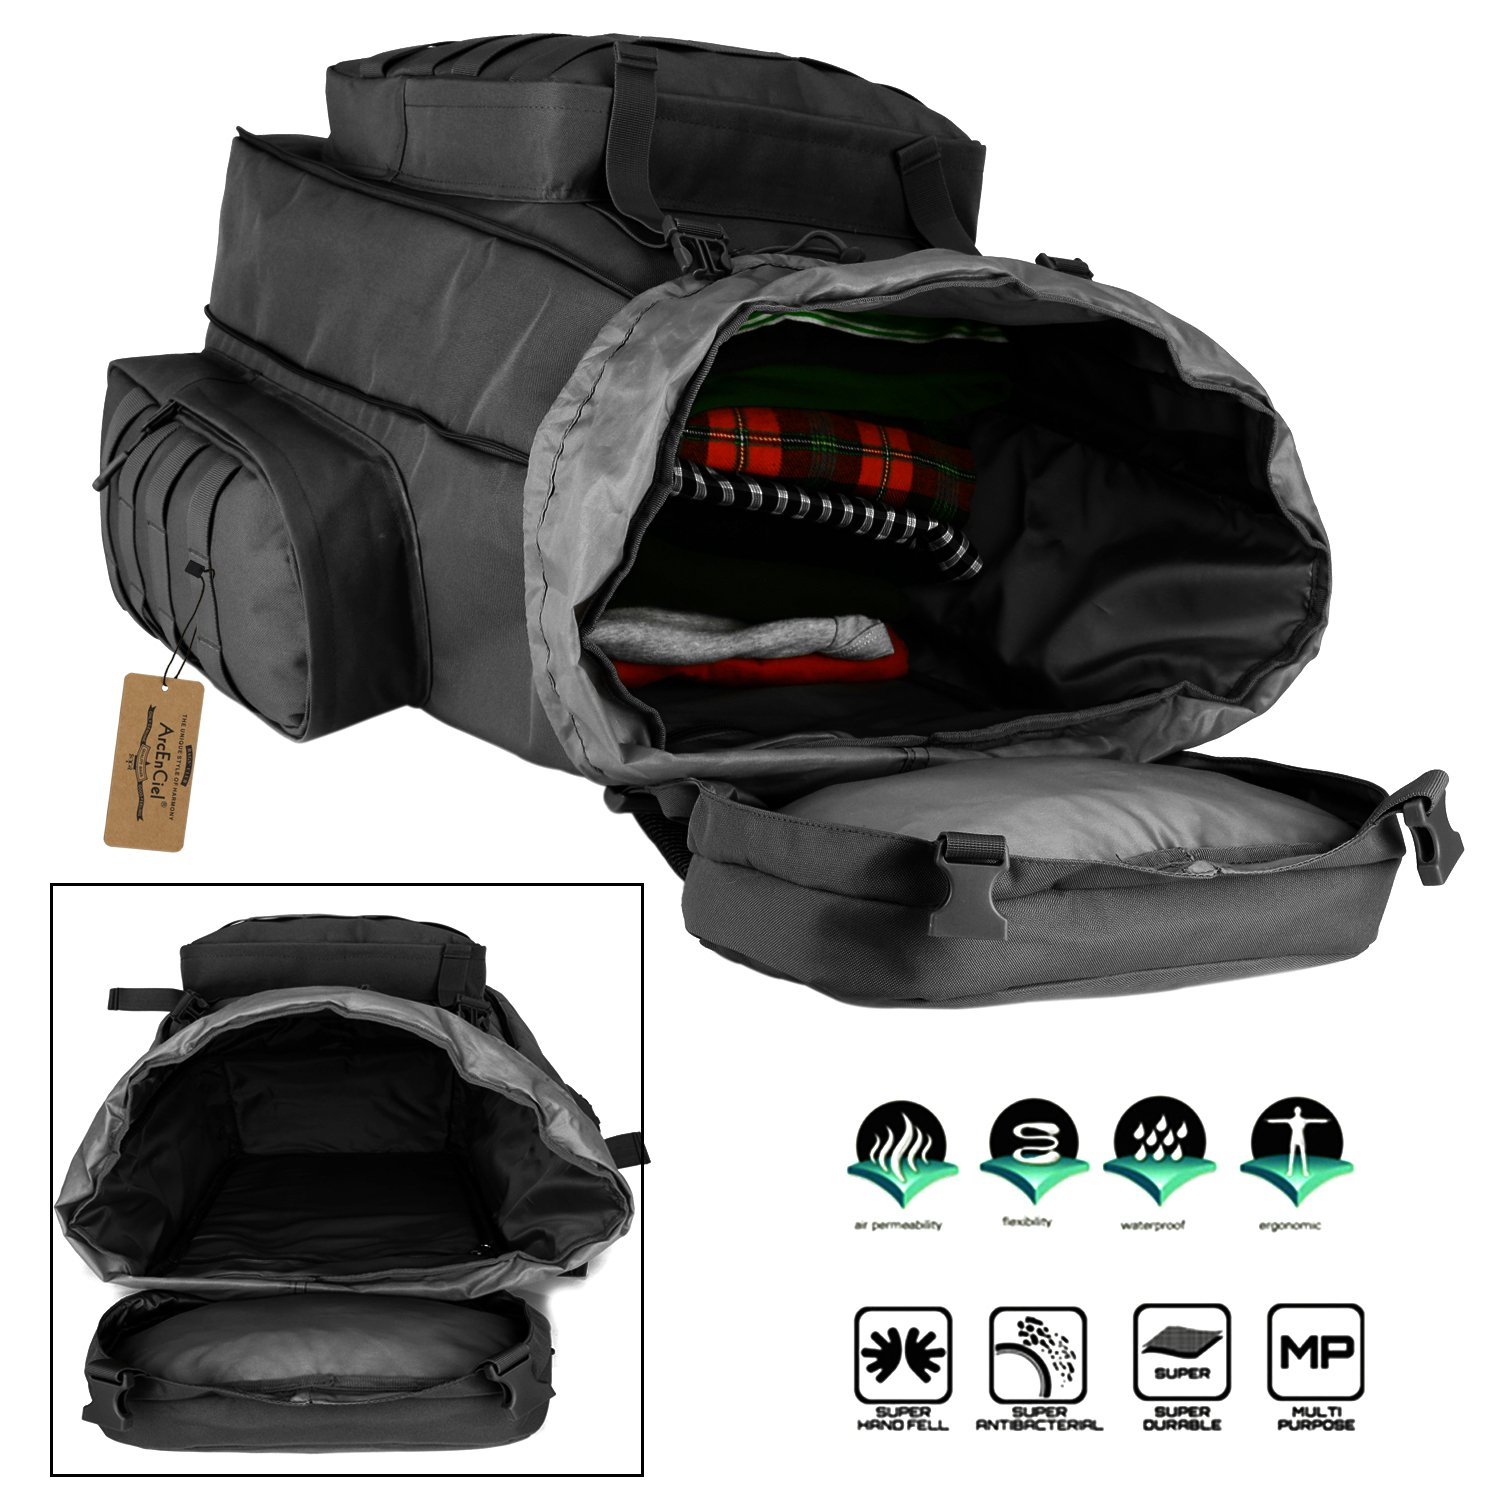 ArcEnCiel 70-85L Large Capacity Tactical Travel Backpack MOLLE Rucksack Outdoor Travel Bag for Travelling Trekking Camping Hiking Hunting -Rain Cover Included (Black) by ArcEnCiel (Image #6)